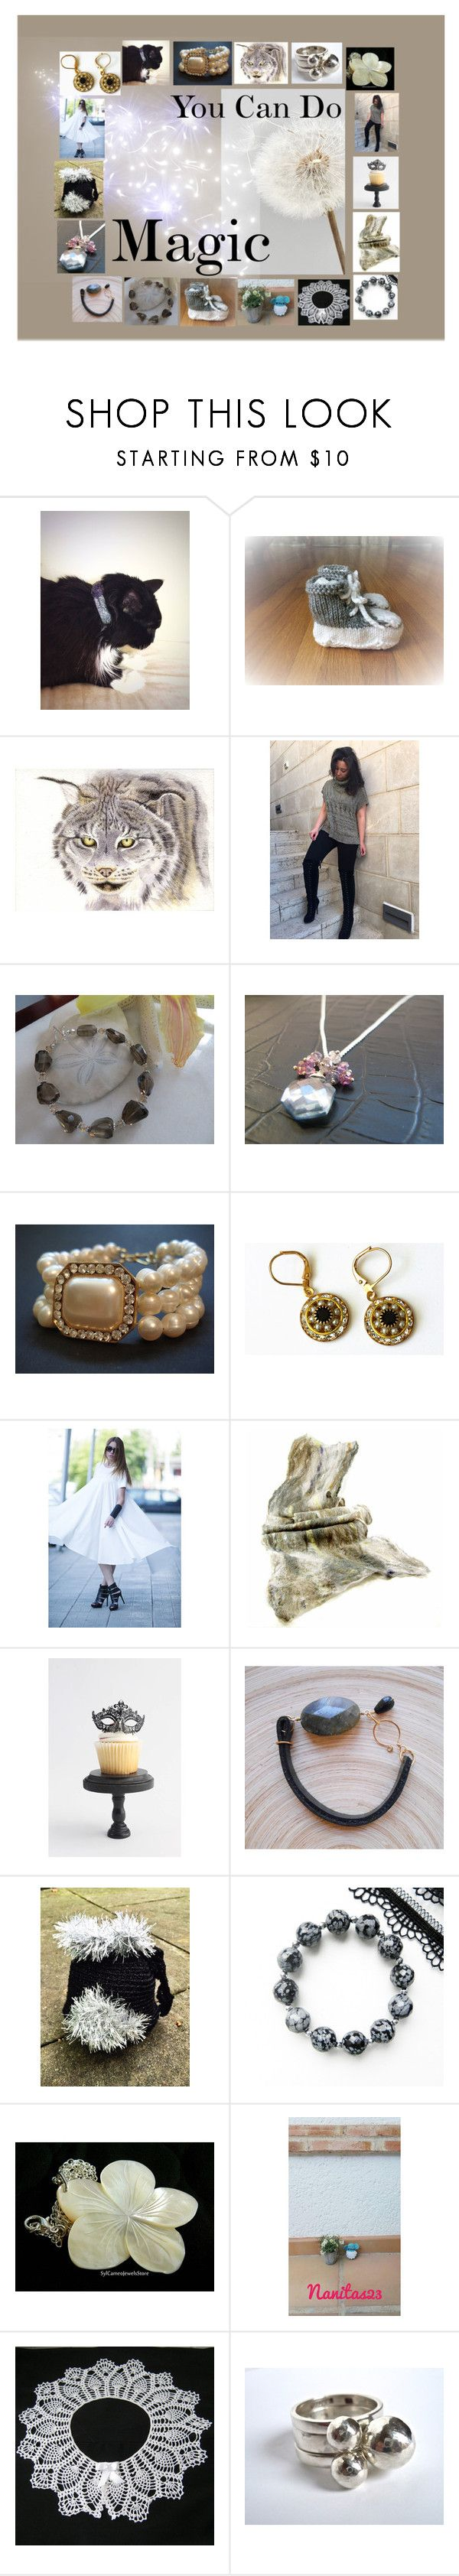 """""""You Can Do Magic: Birthday Gift Ideas"""" by paulinemcewen ❤ liked on Polyvore featuring Masquerade, Raton and vintage"""